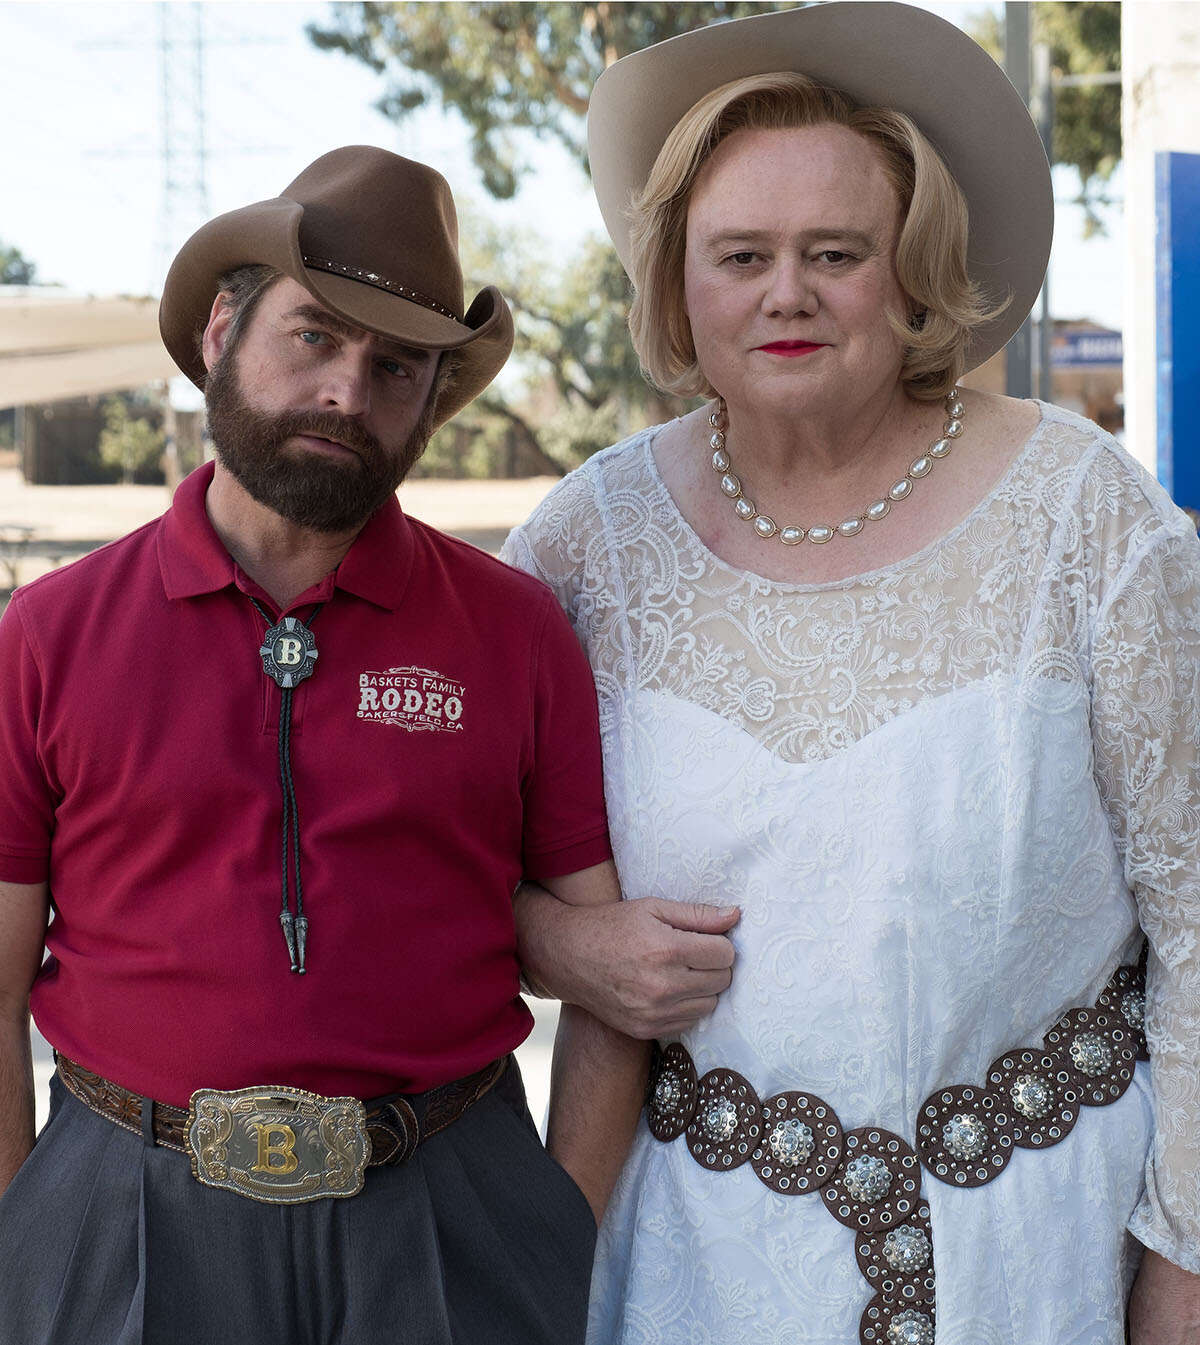 """BASKETS -- """"Wild Horses"""" --Season 3, Episode 1 (Airs Tuesday, January 23, 10:00 pm/ep) -- Pictured: (l-r) Zach Galifianakis as Dale Baskets, Louie Anderson as Christine Baskets. CR: Colleen Hayes/FX"""